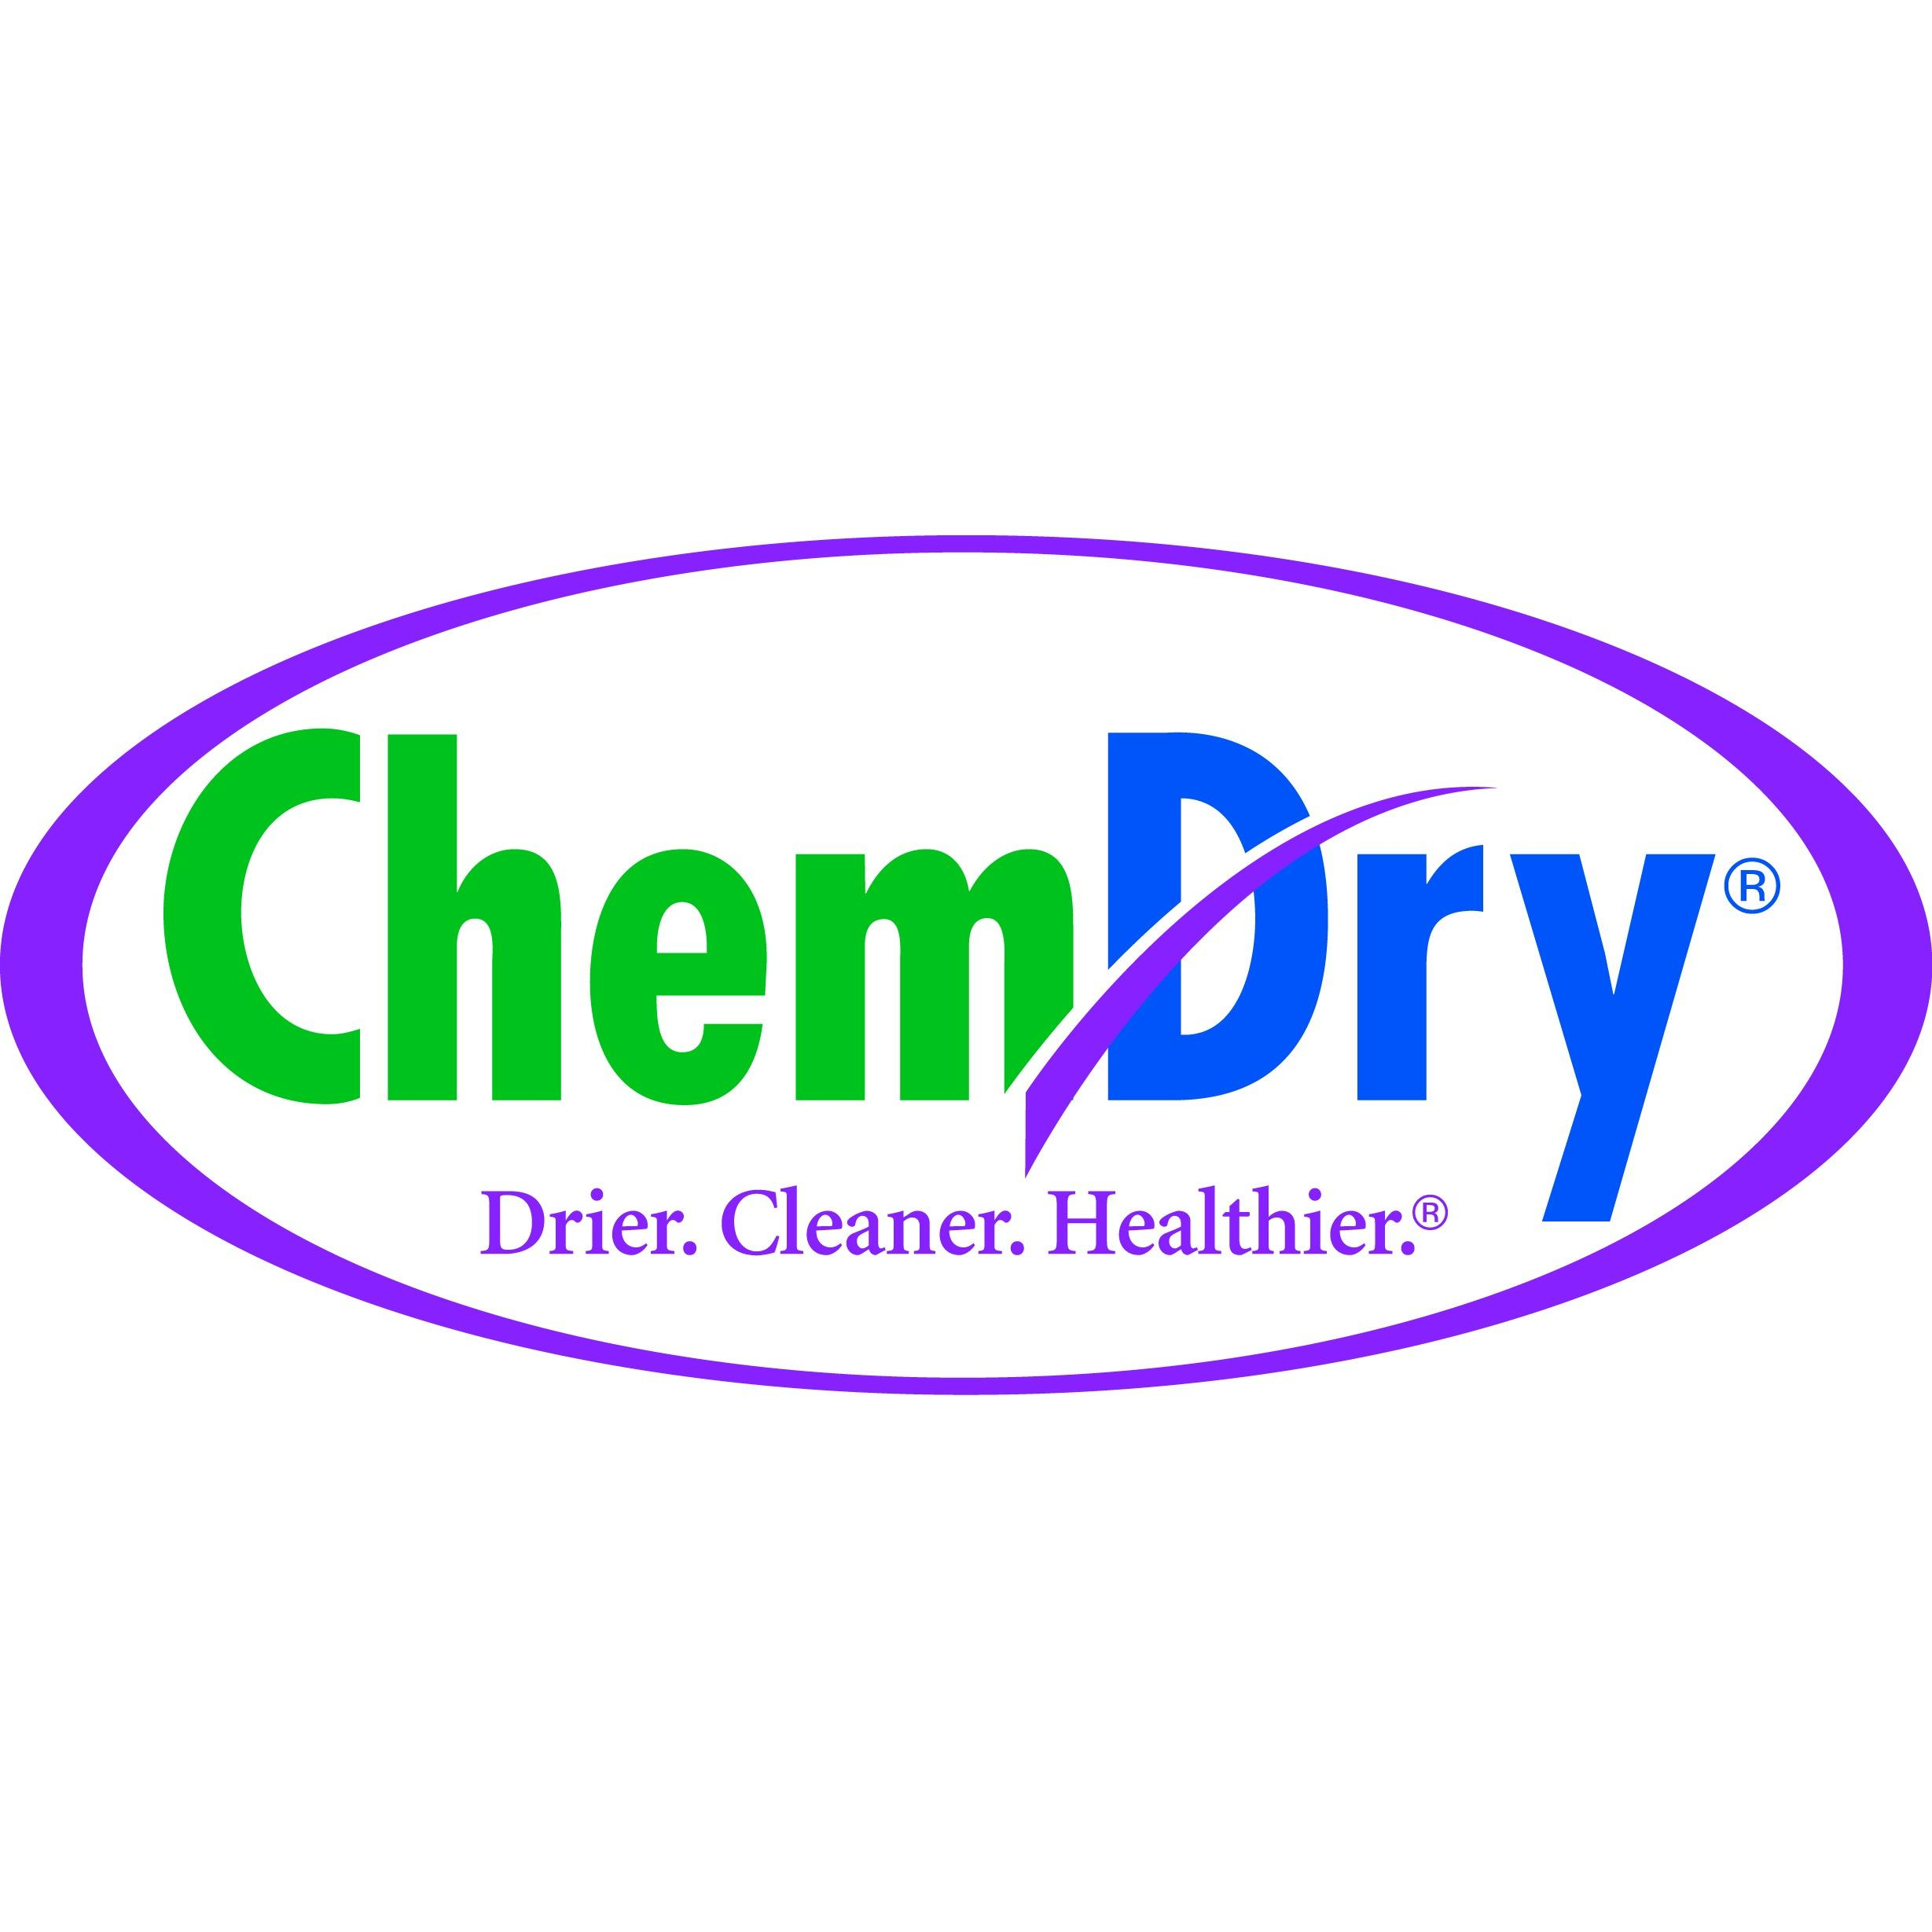 image of the ABC Chem-Dry